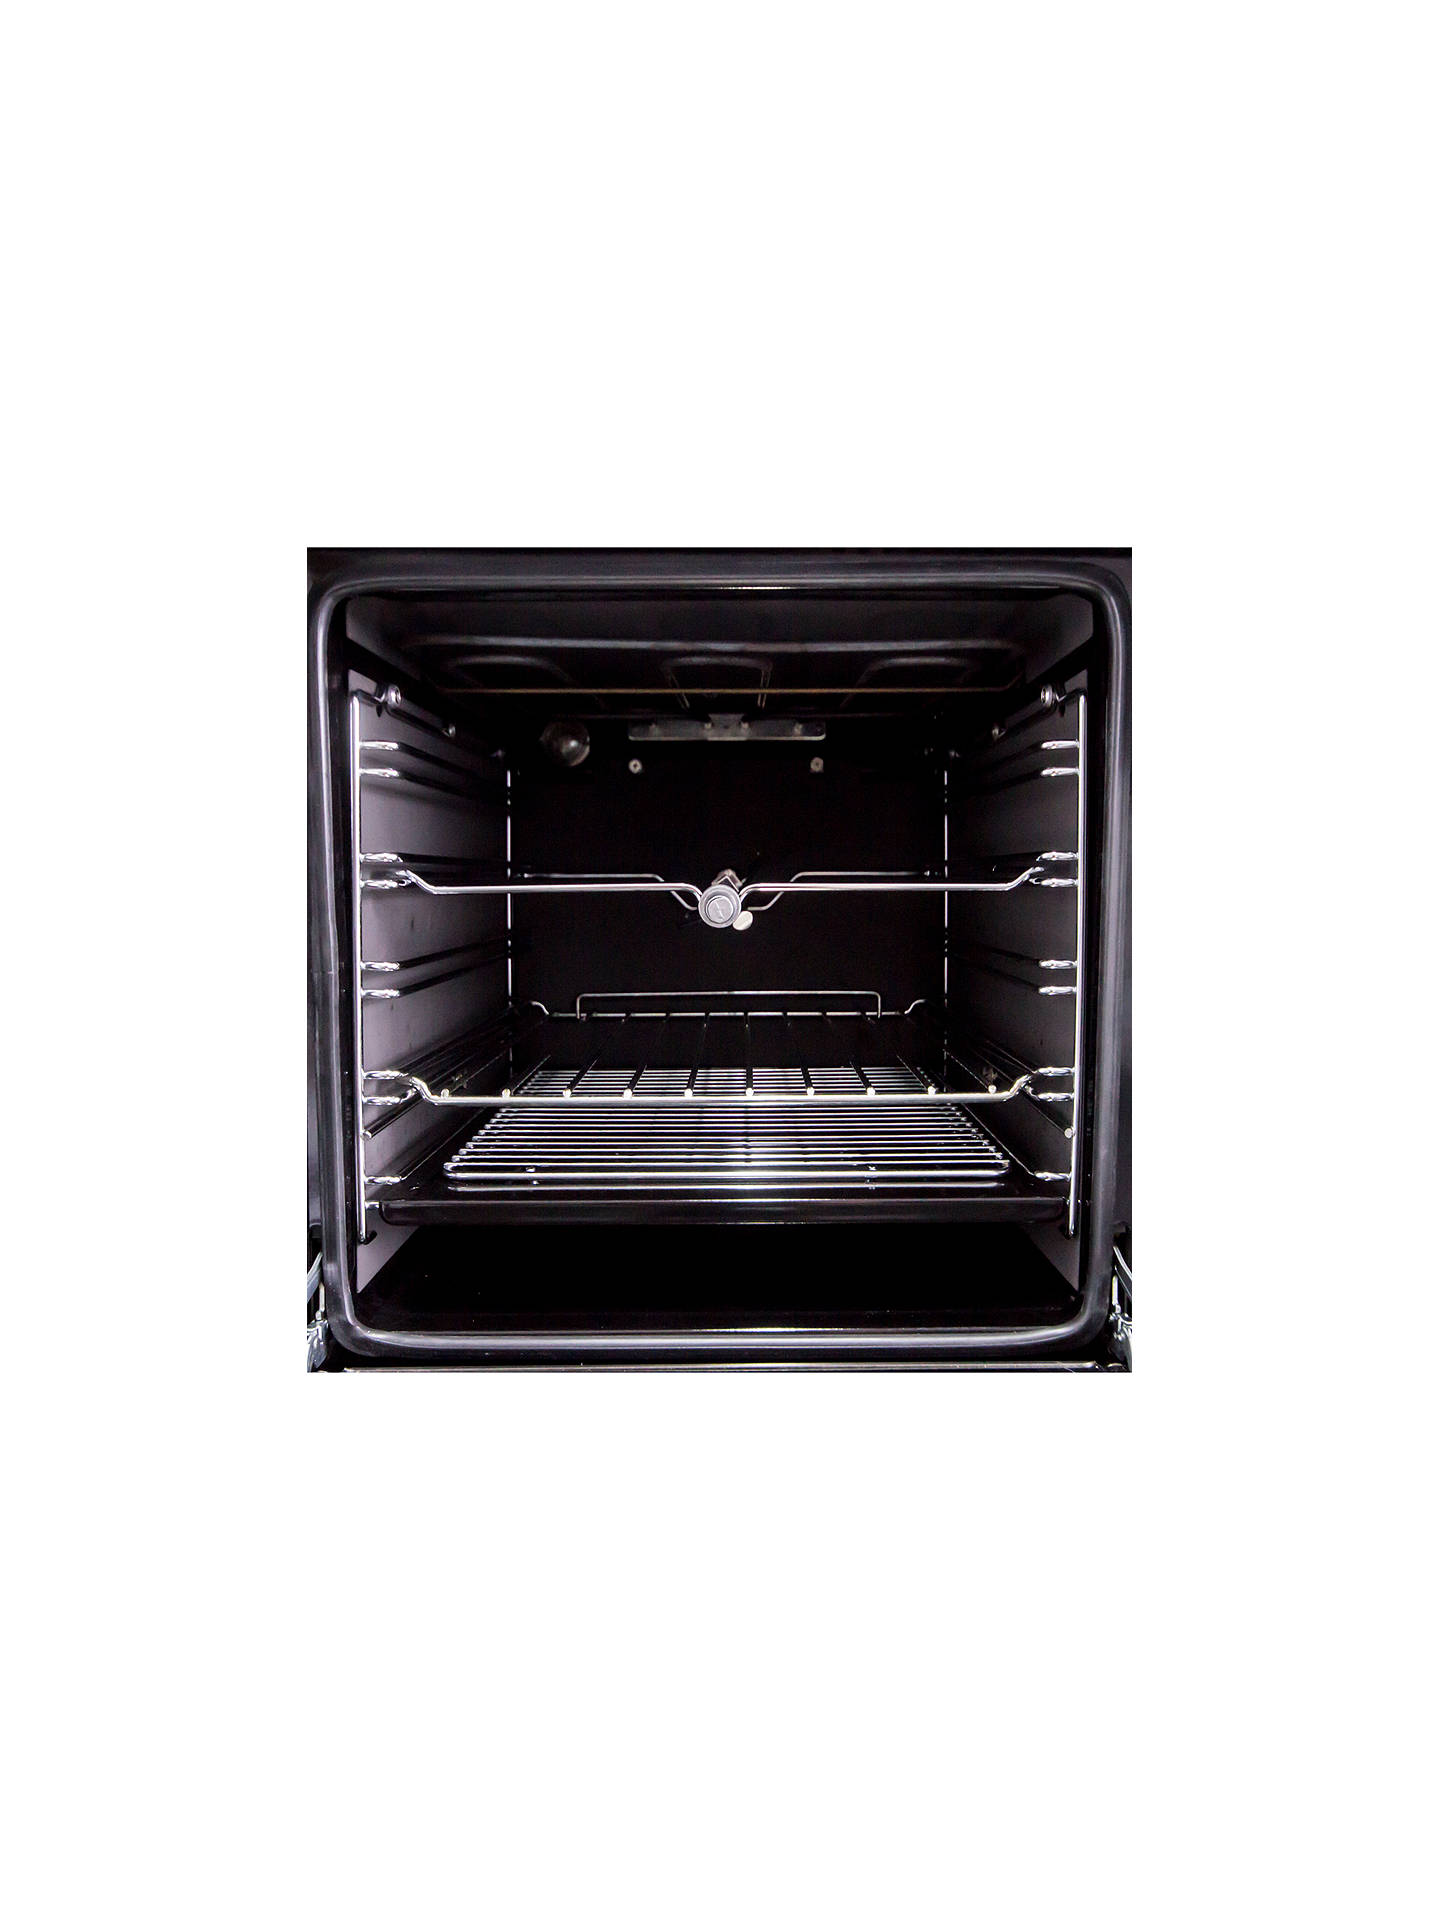 Buy ILVE Roma PTW1006E3/N Dual Fuel Freestanding Range Cooker, Black Online at johnlewis.com